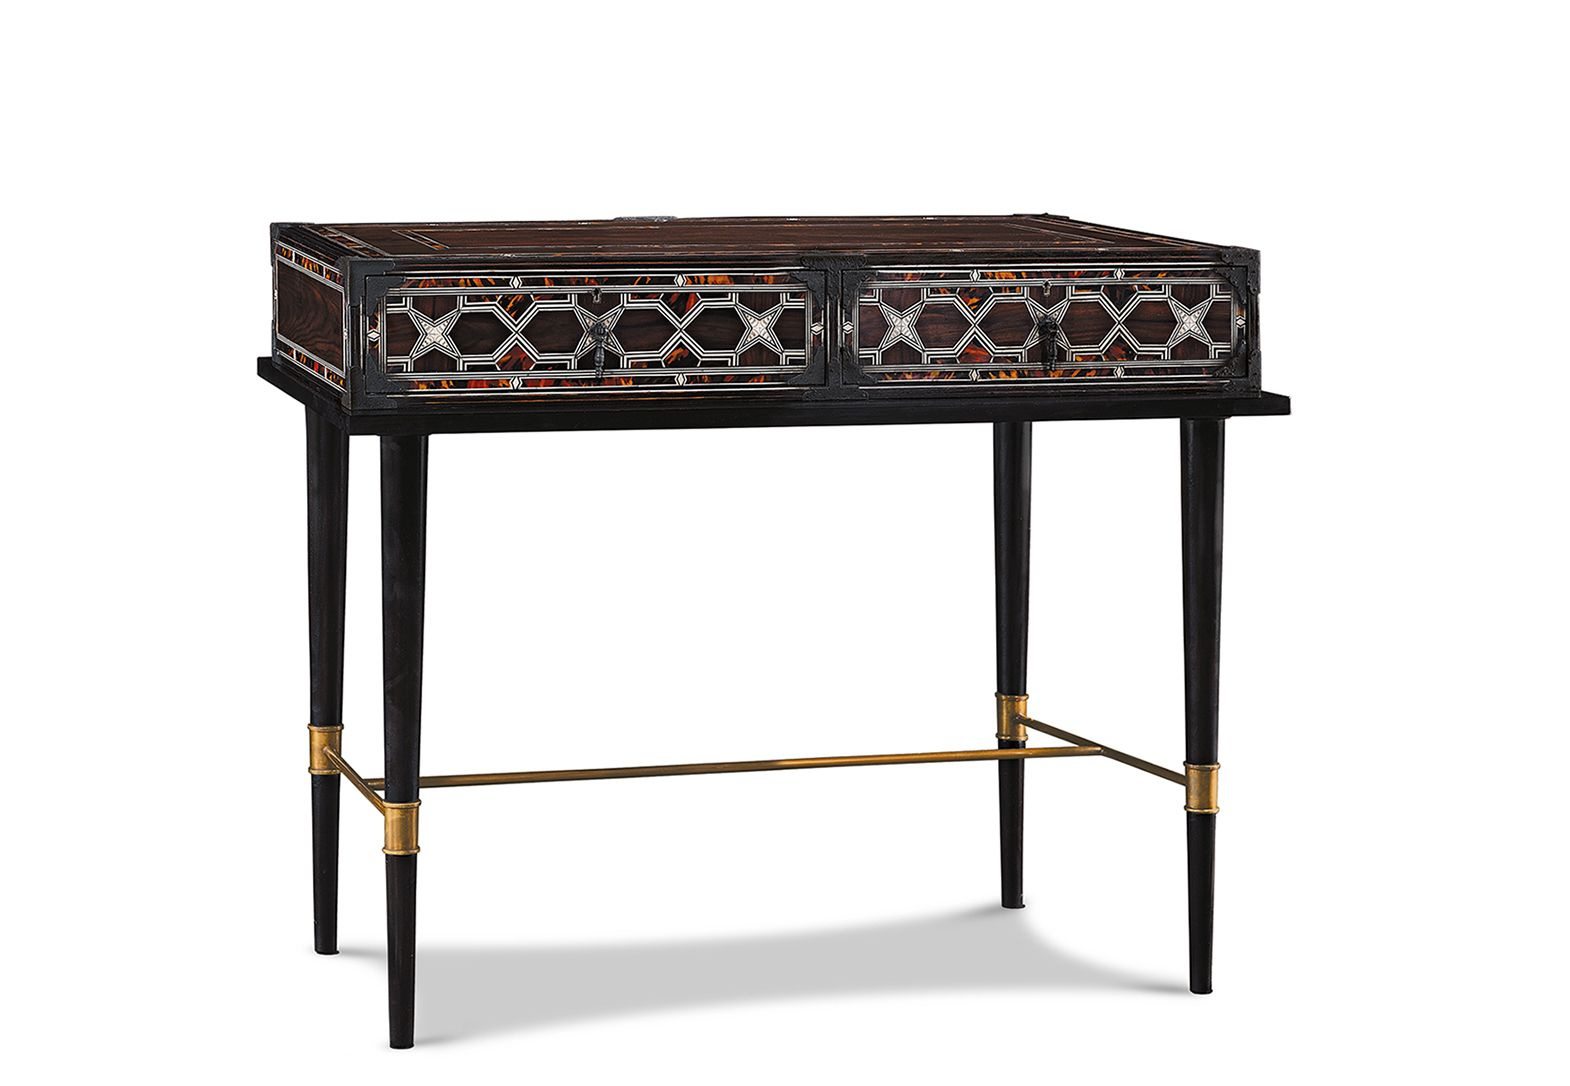 Mughal Console – Alfonso Marina | Traditional Style Console Tables With Regard To Intarsia Console Tables (View 21 of 30)